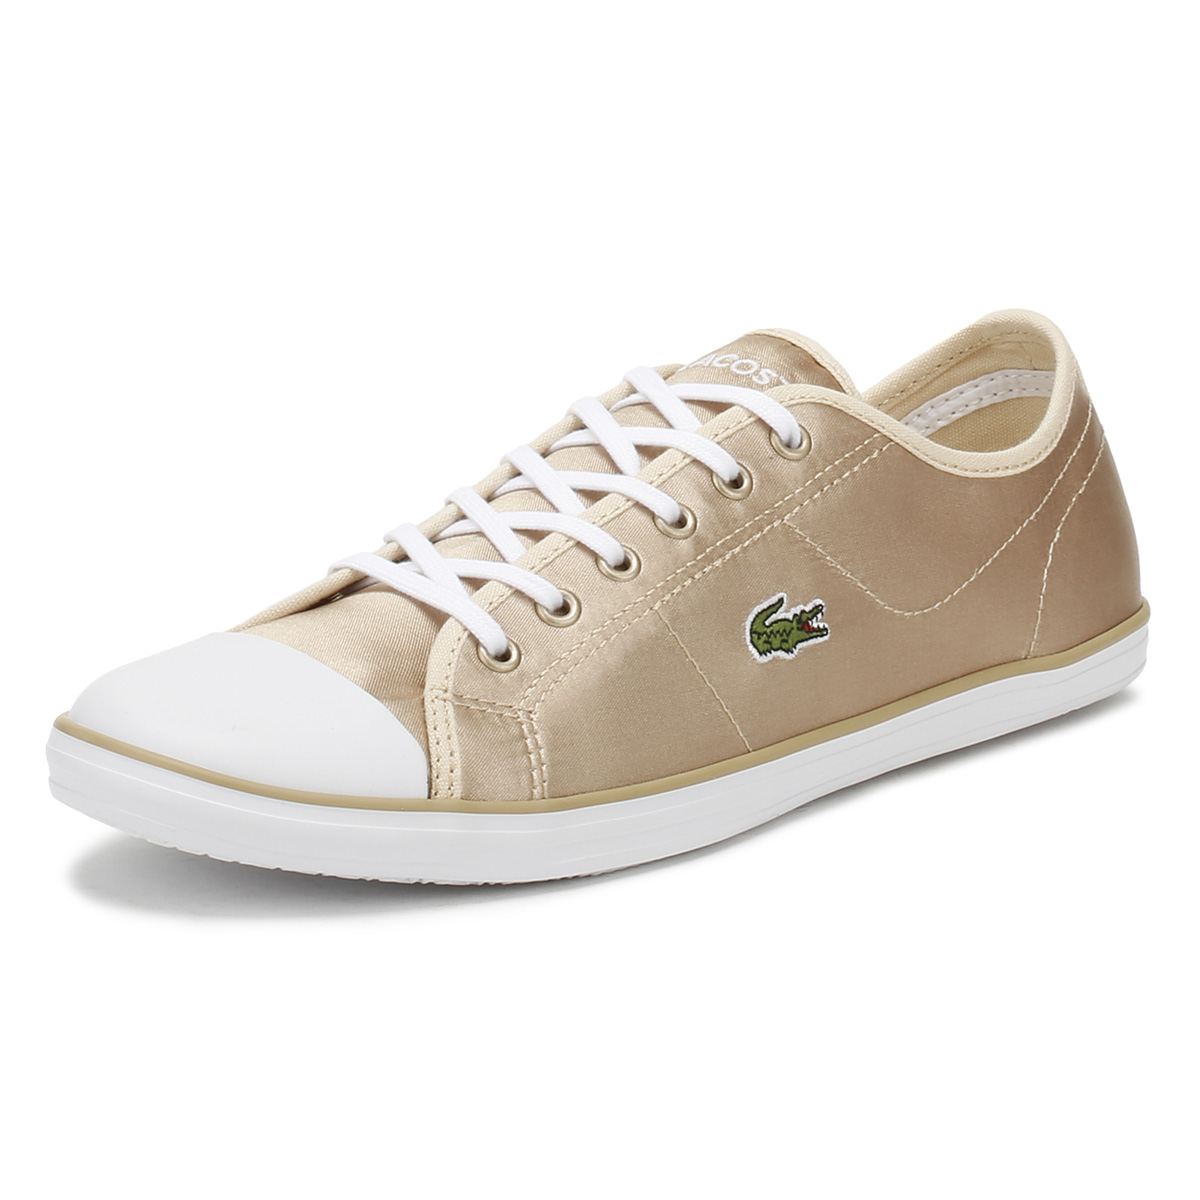 finest selection 78091 2225a Details about Lacoste Womens Trainers Gold & White Ziane 118 2 Lace Up  Sport Casual Shoes